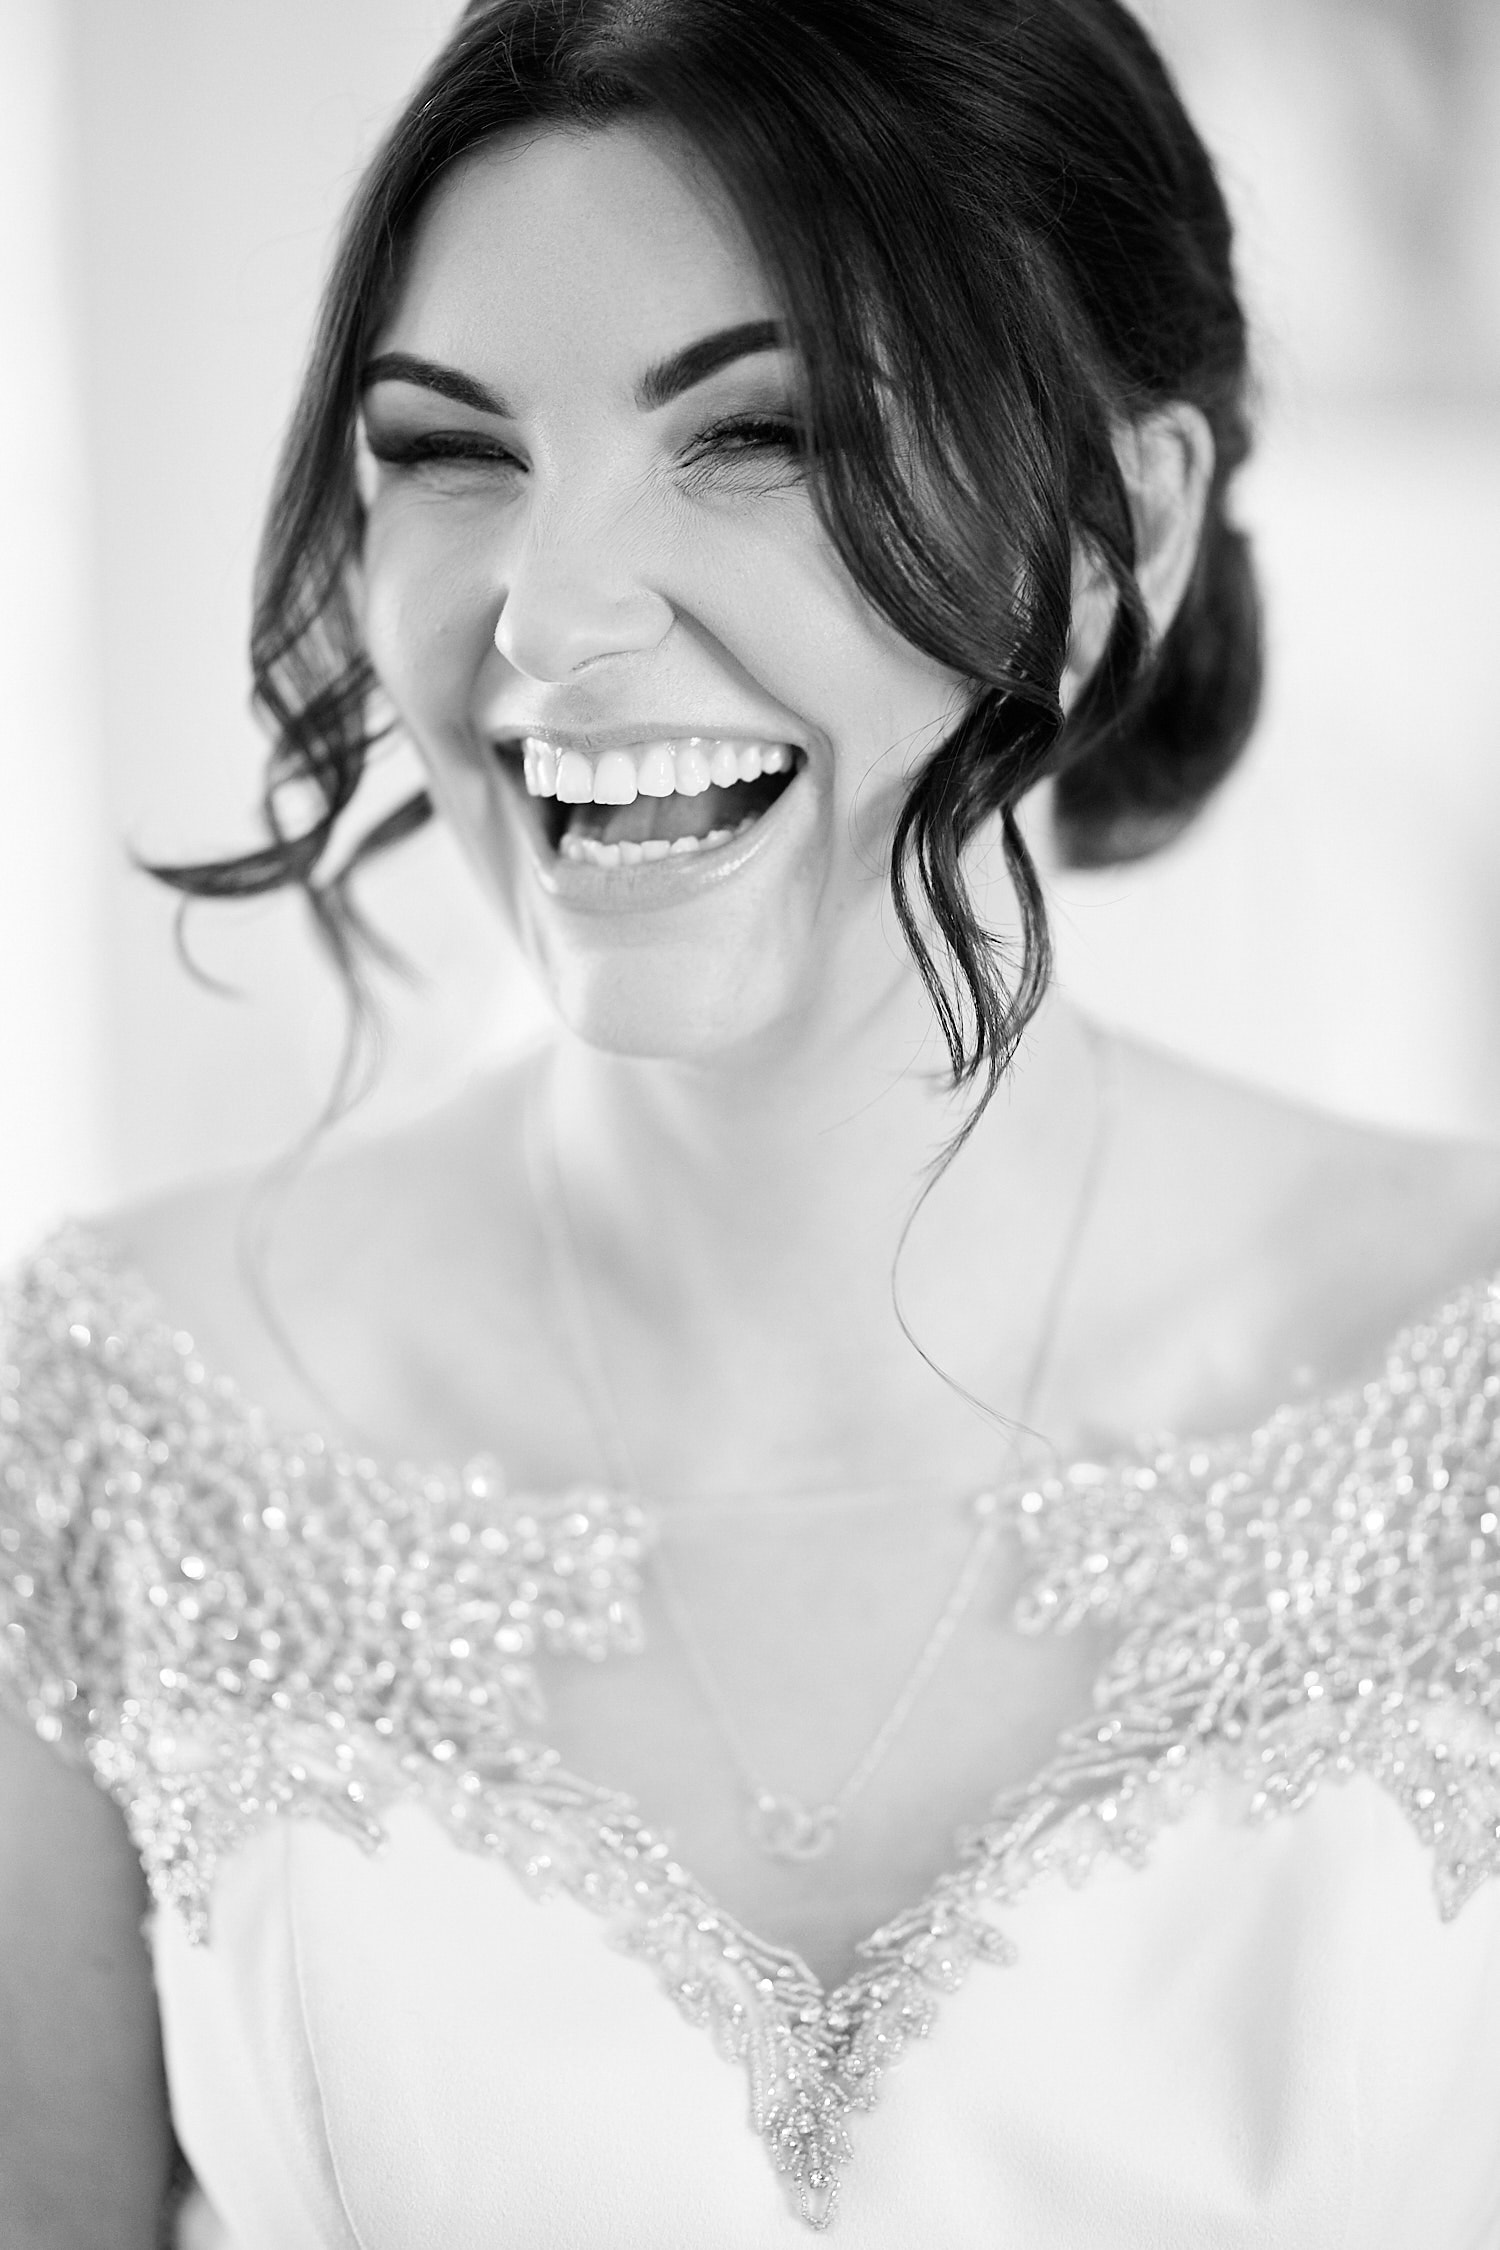 A laughing bride